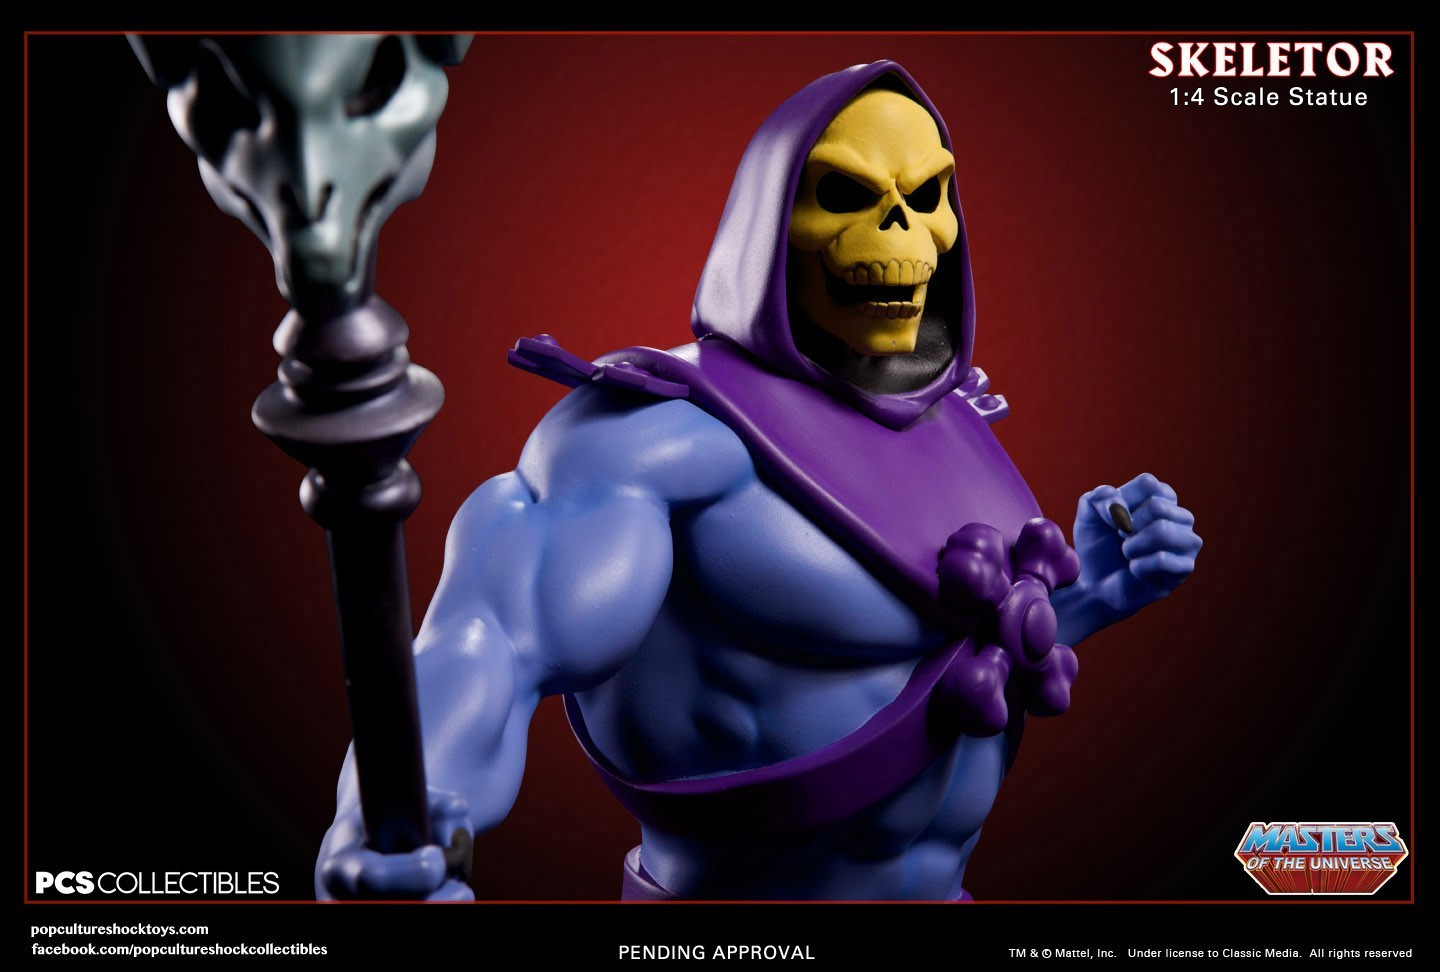 Alejandro pereira skeletor media s 1